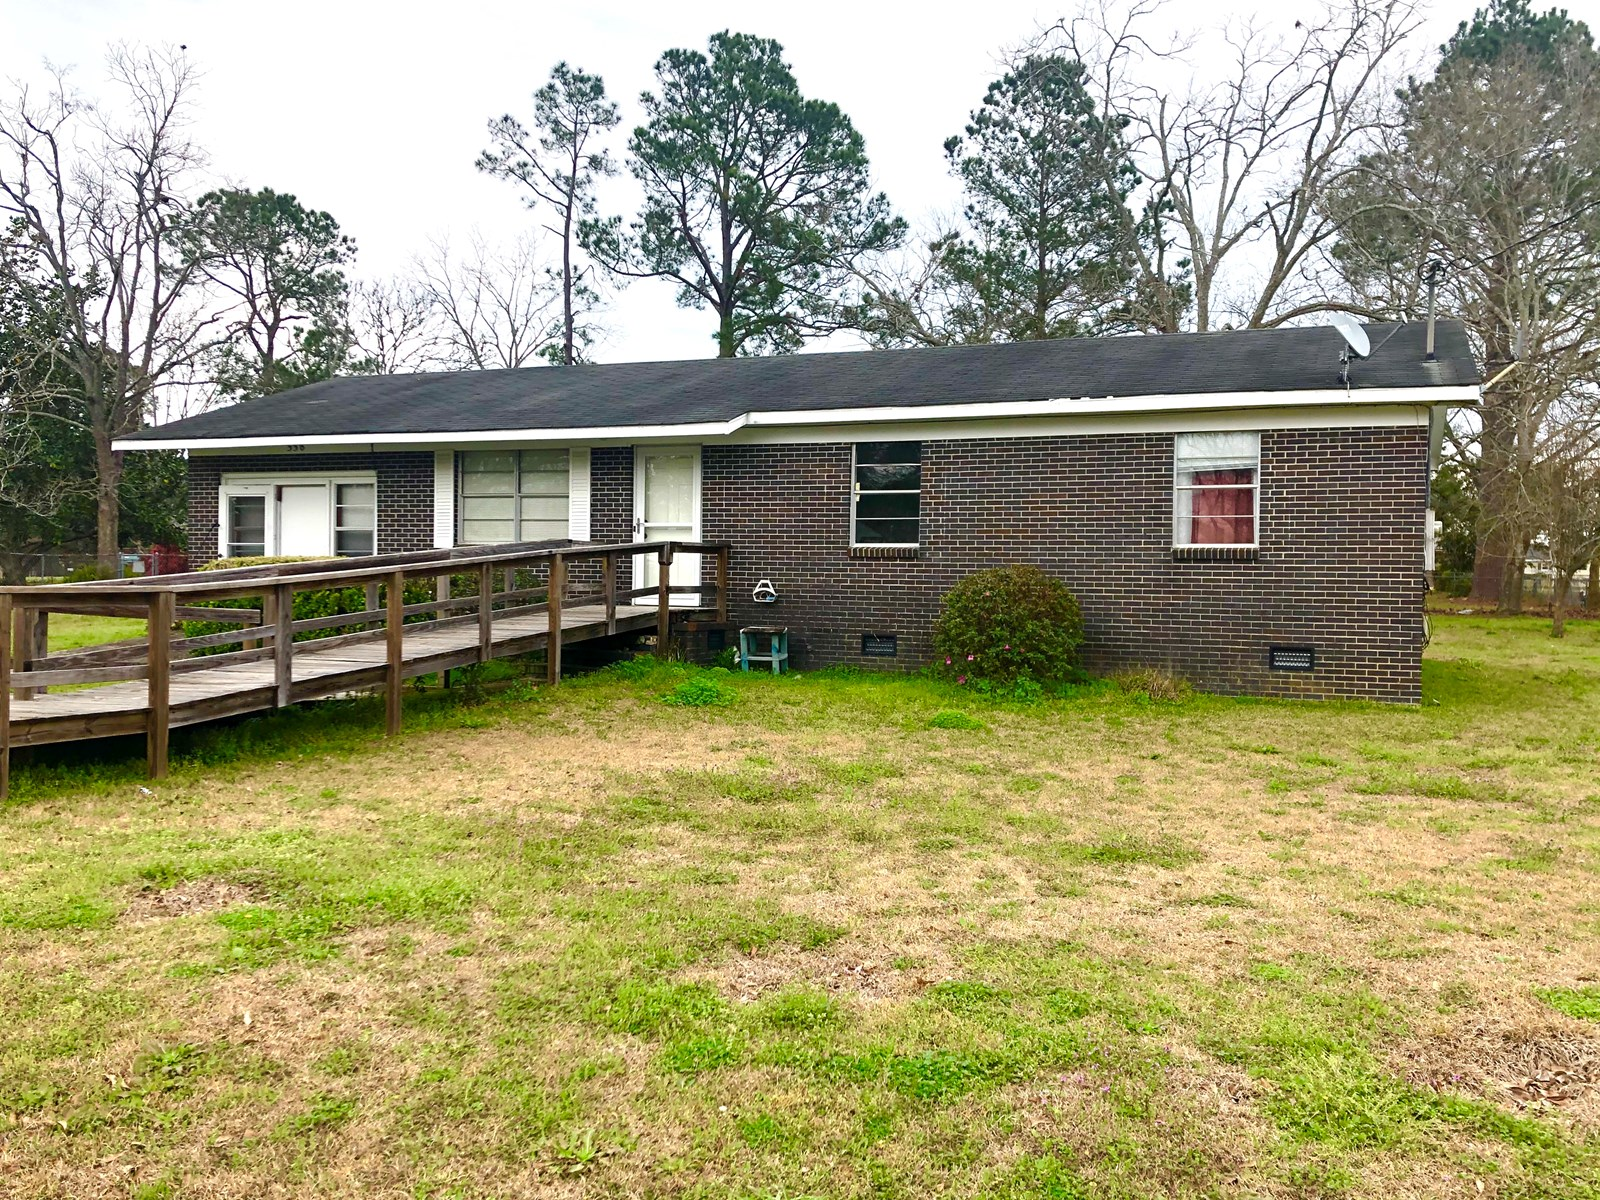 Home for sale in the town of Slocomb, AL